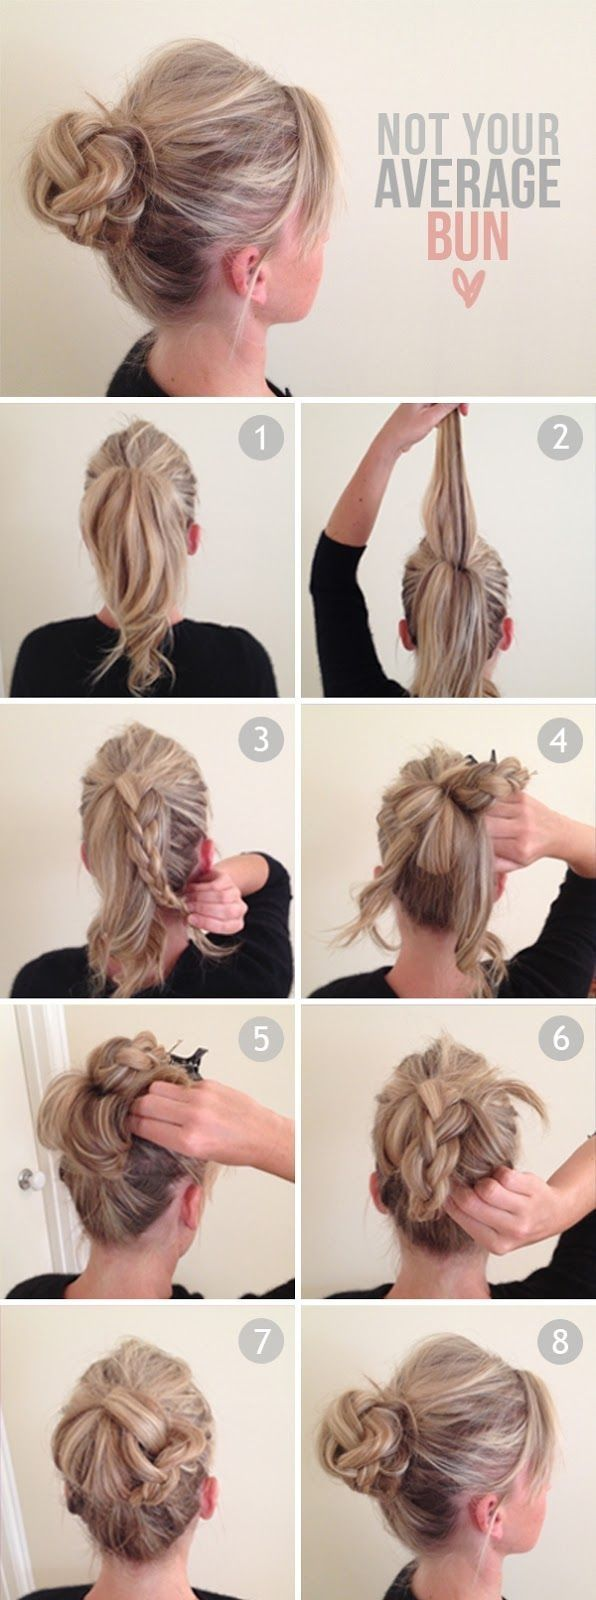 Top hairstyle tutorials for this fall hair styles pinterest